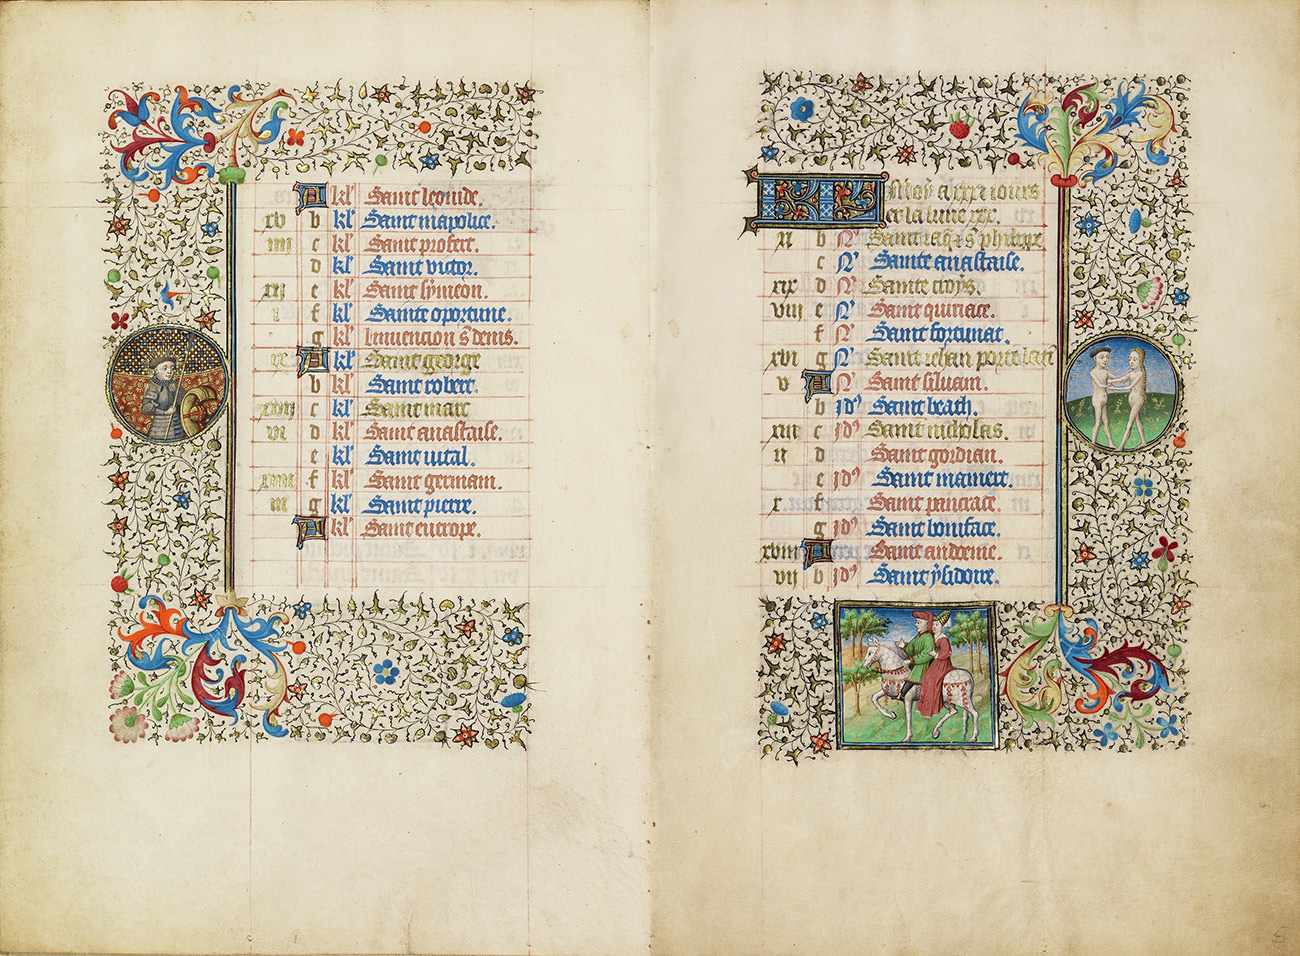 A two-page spread showing decorative borders with details of Saint George, a man dressed in armor, Gemini, nude twins facing each other on a field of green, and a male-female couple on horseback.